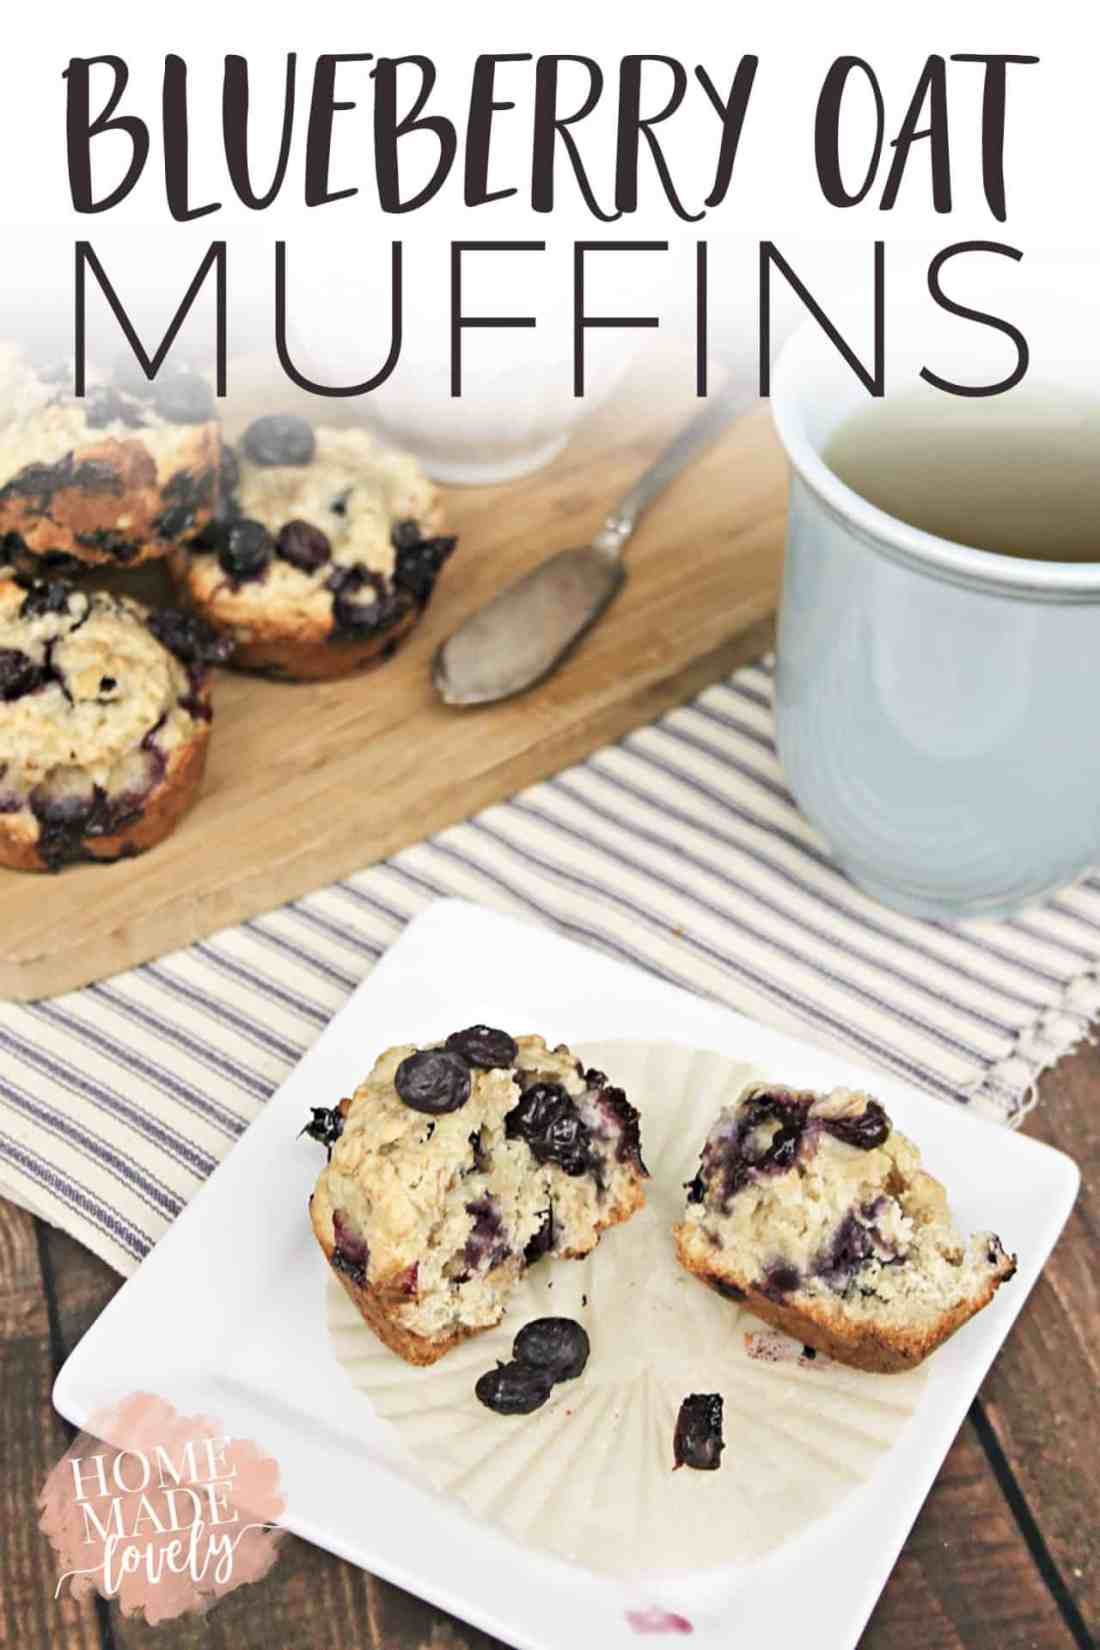 Make these yummy, family-favorite blueberry oat muffins for breakfast or a quick snack! #recipe #blueberrymuffin #nationalblueberrymonth